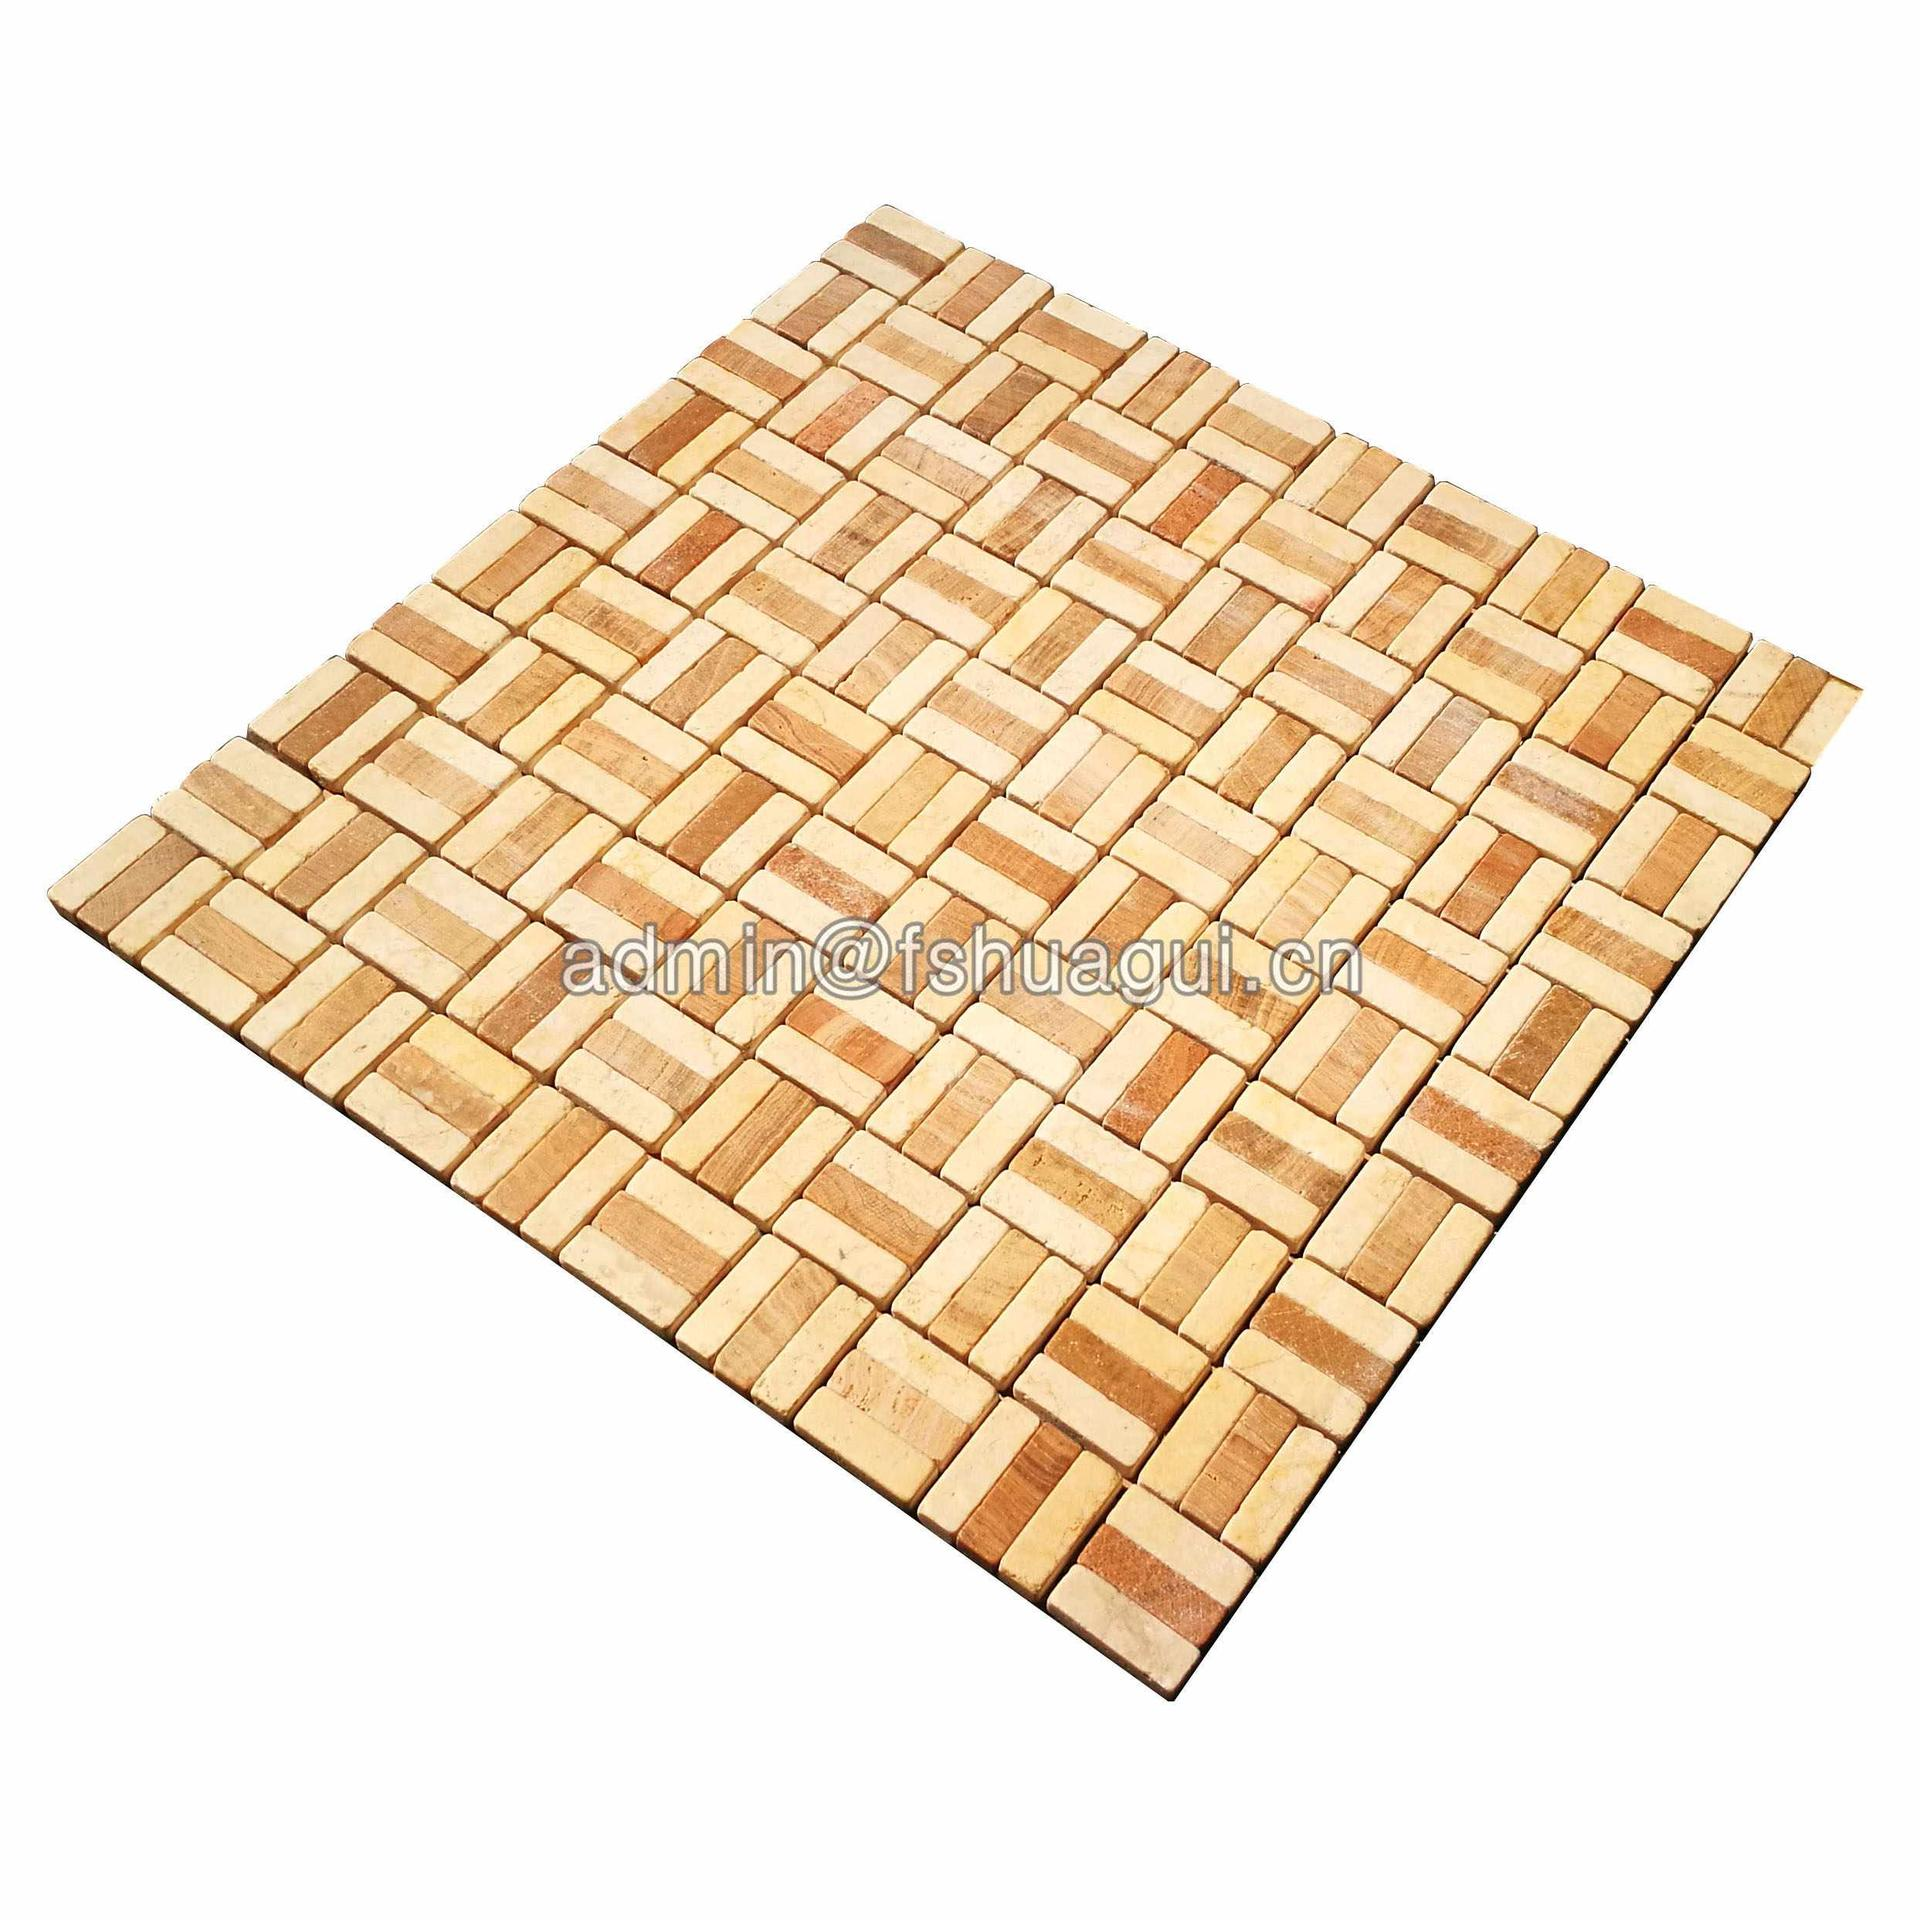 Exterior wall house decorative stone mosaic tile pattern